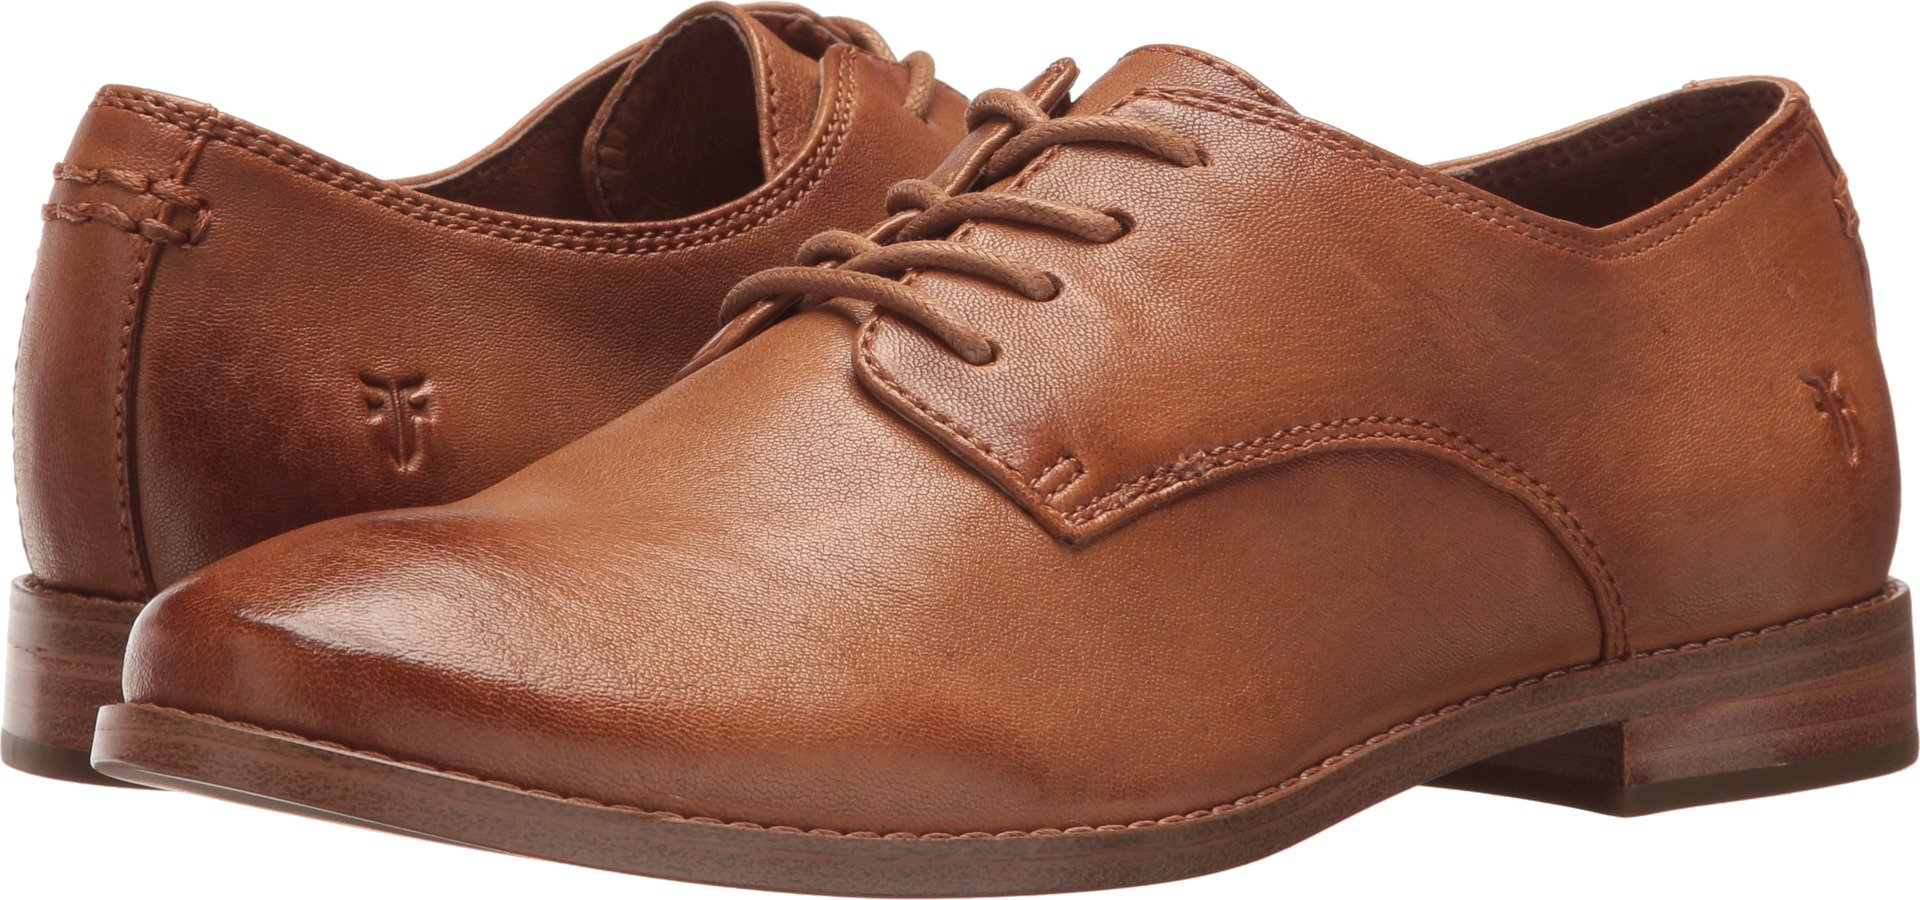 FRYE Women's Anna Oxford Camel 8 B US